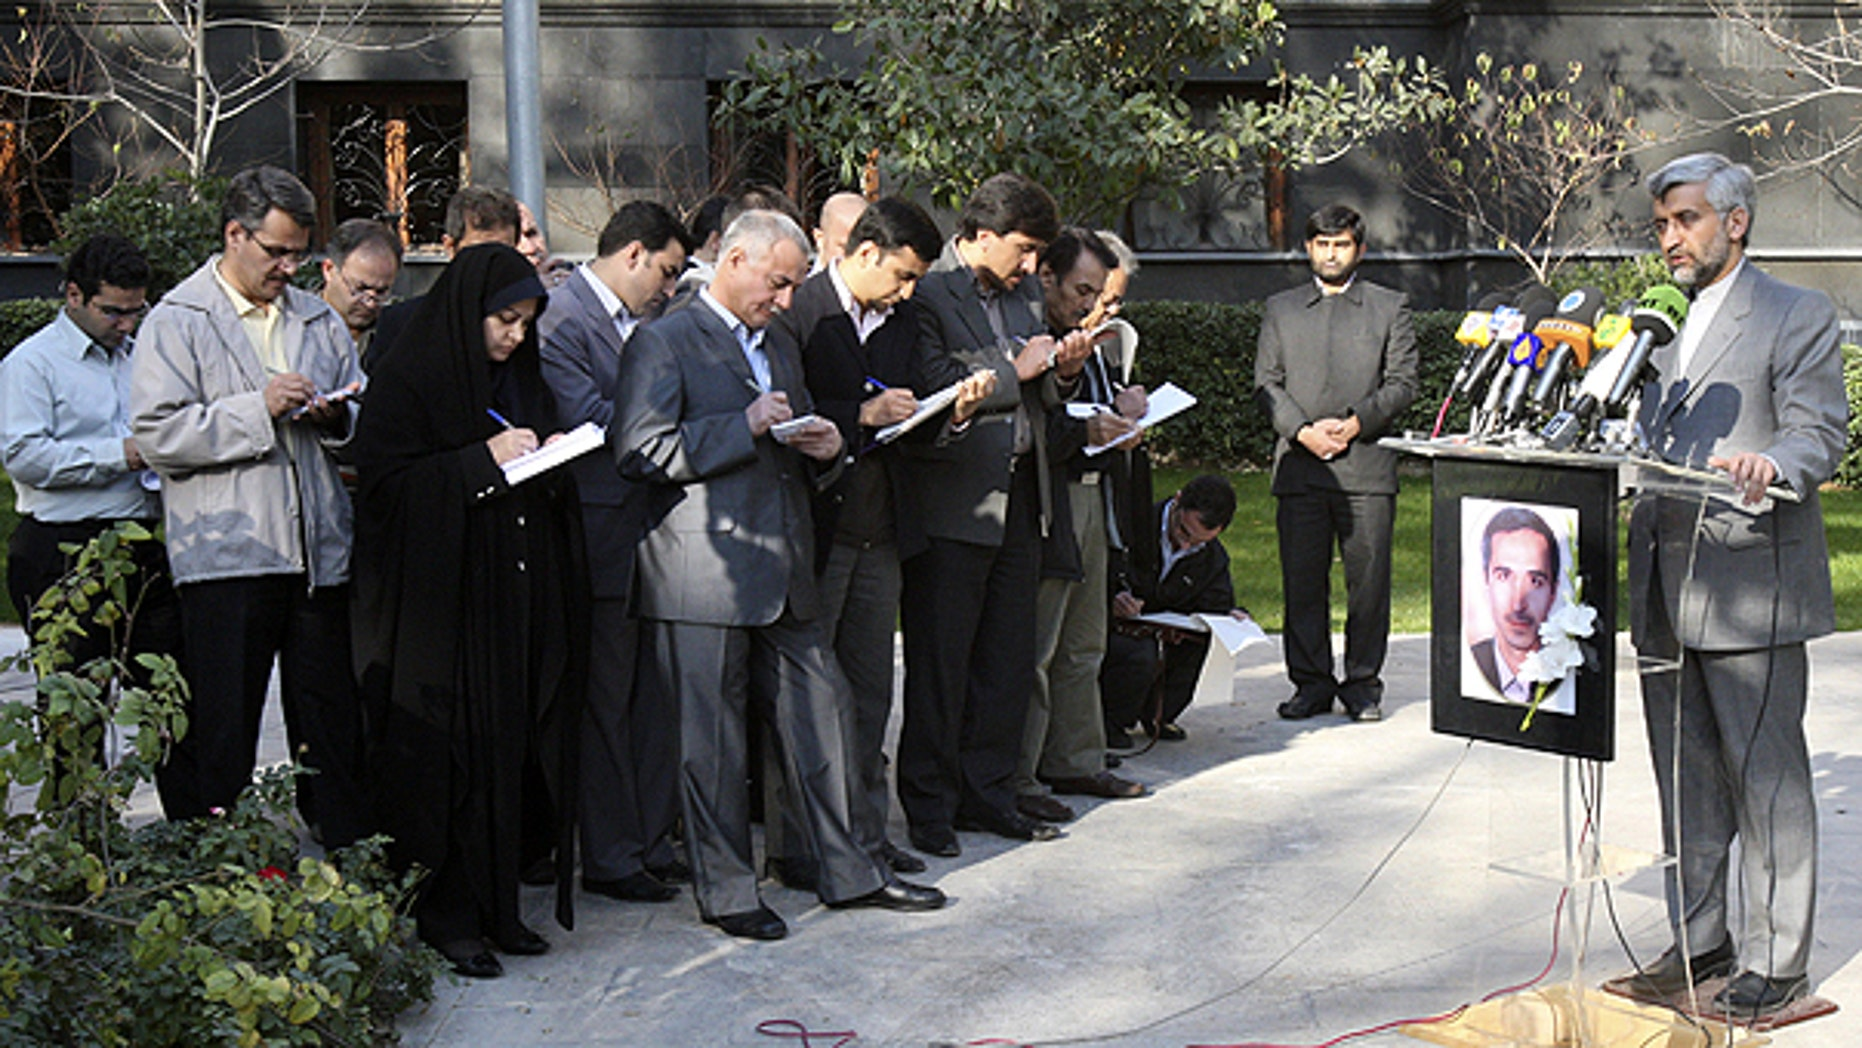 Dec. 4: Iran's top nuclear negotiator Saeed Jalili, right, speaks with media, during a press briefing, in Tehran, Iran.